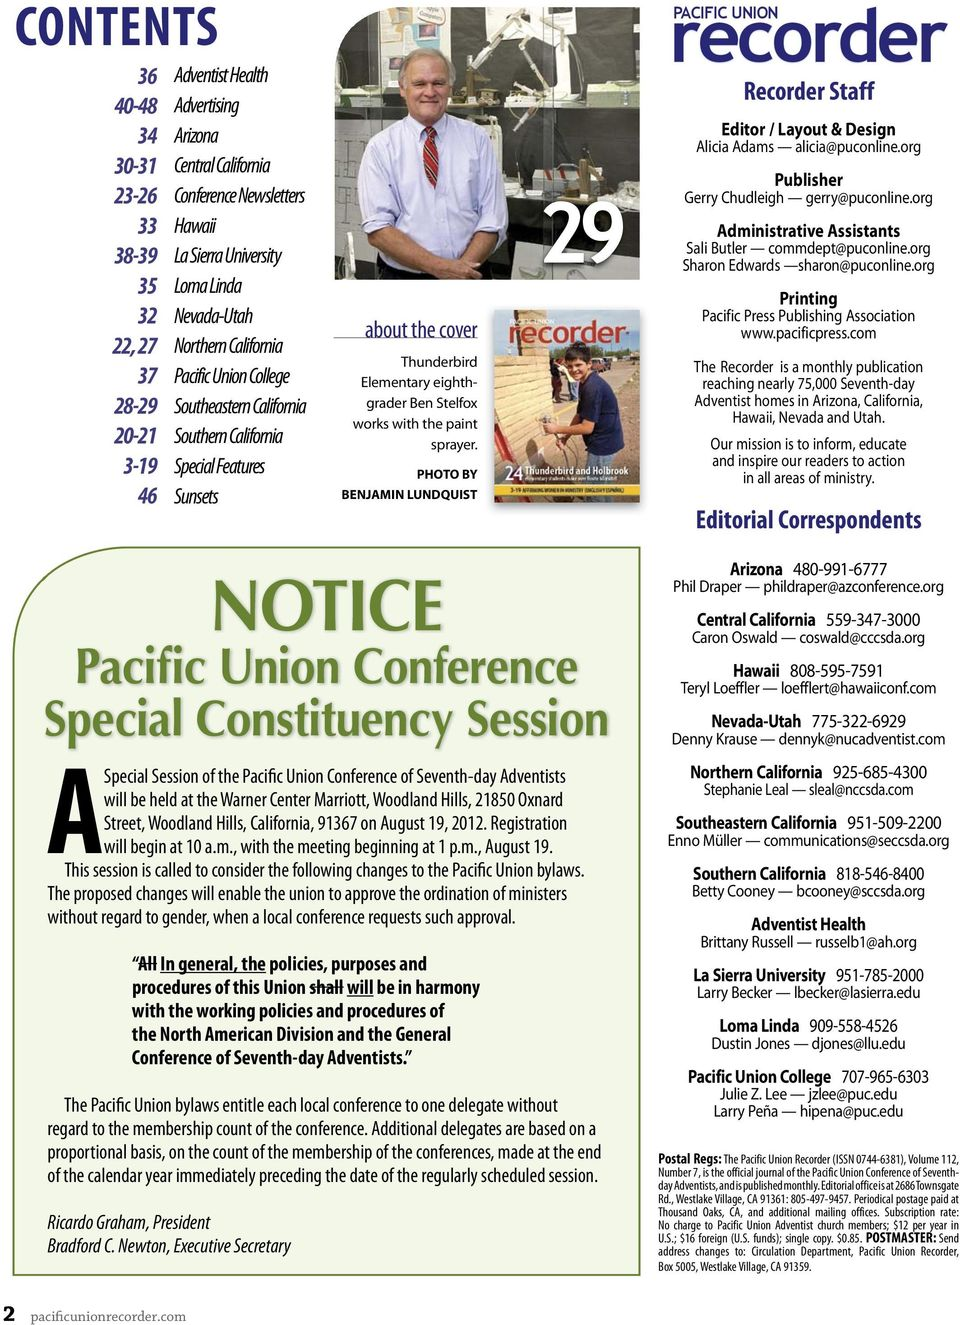 PACIFIC UNION CONNECTING THE PACIFIC UNION ADVENTIST FAMILY